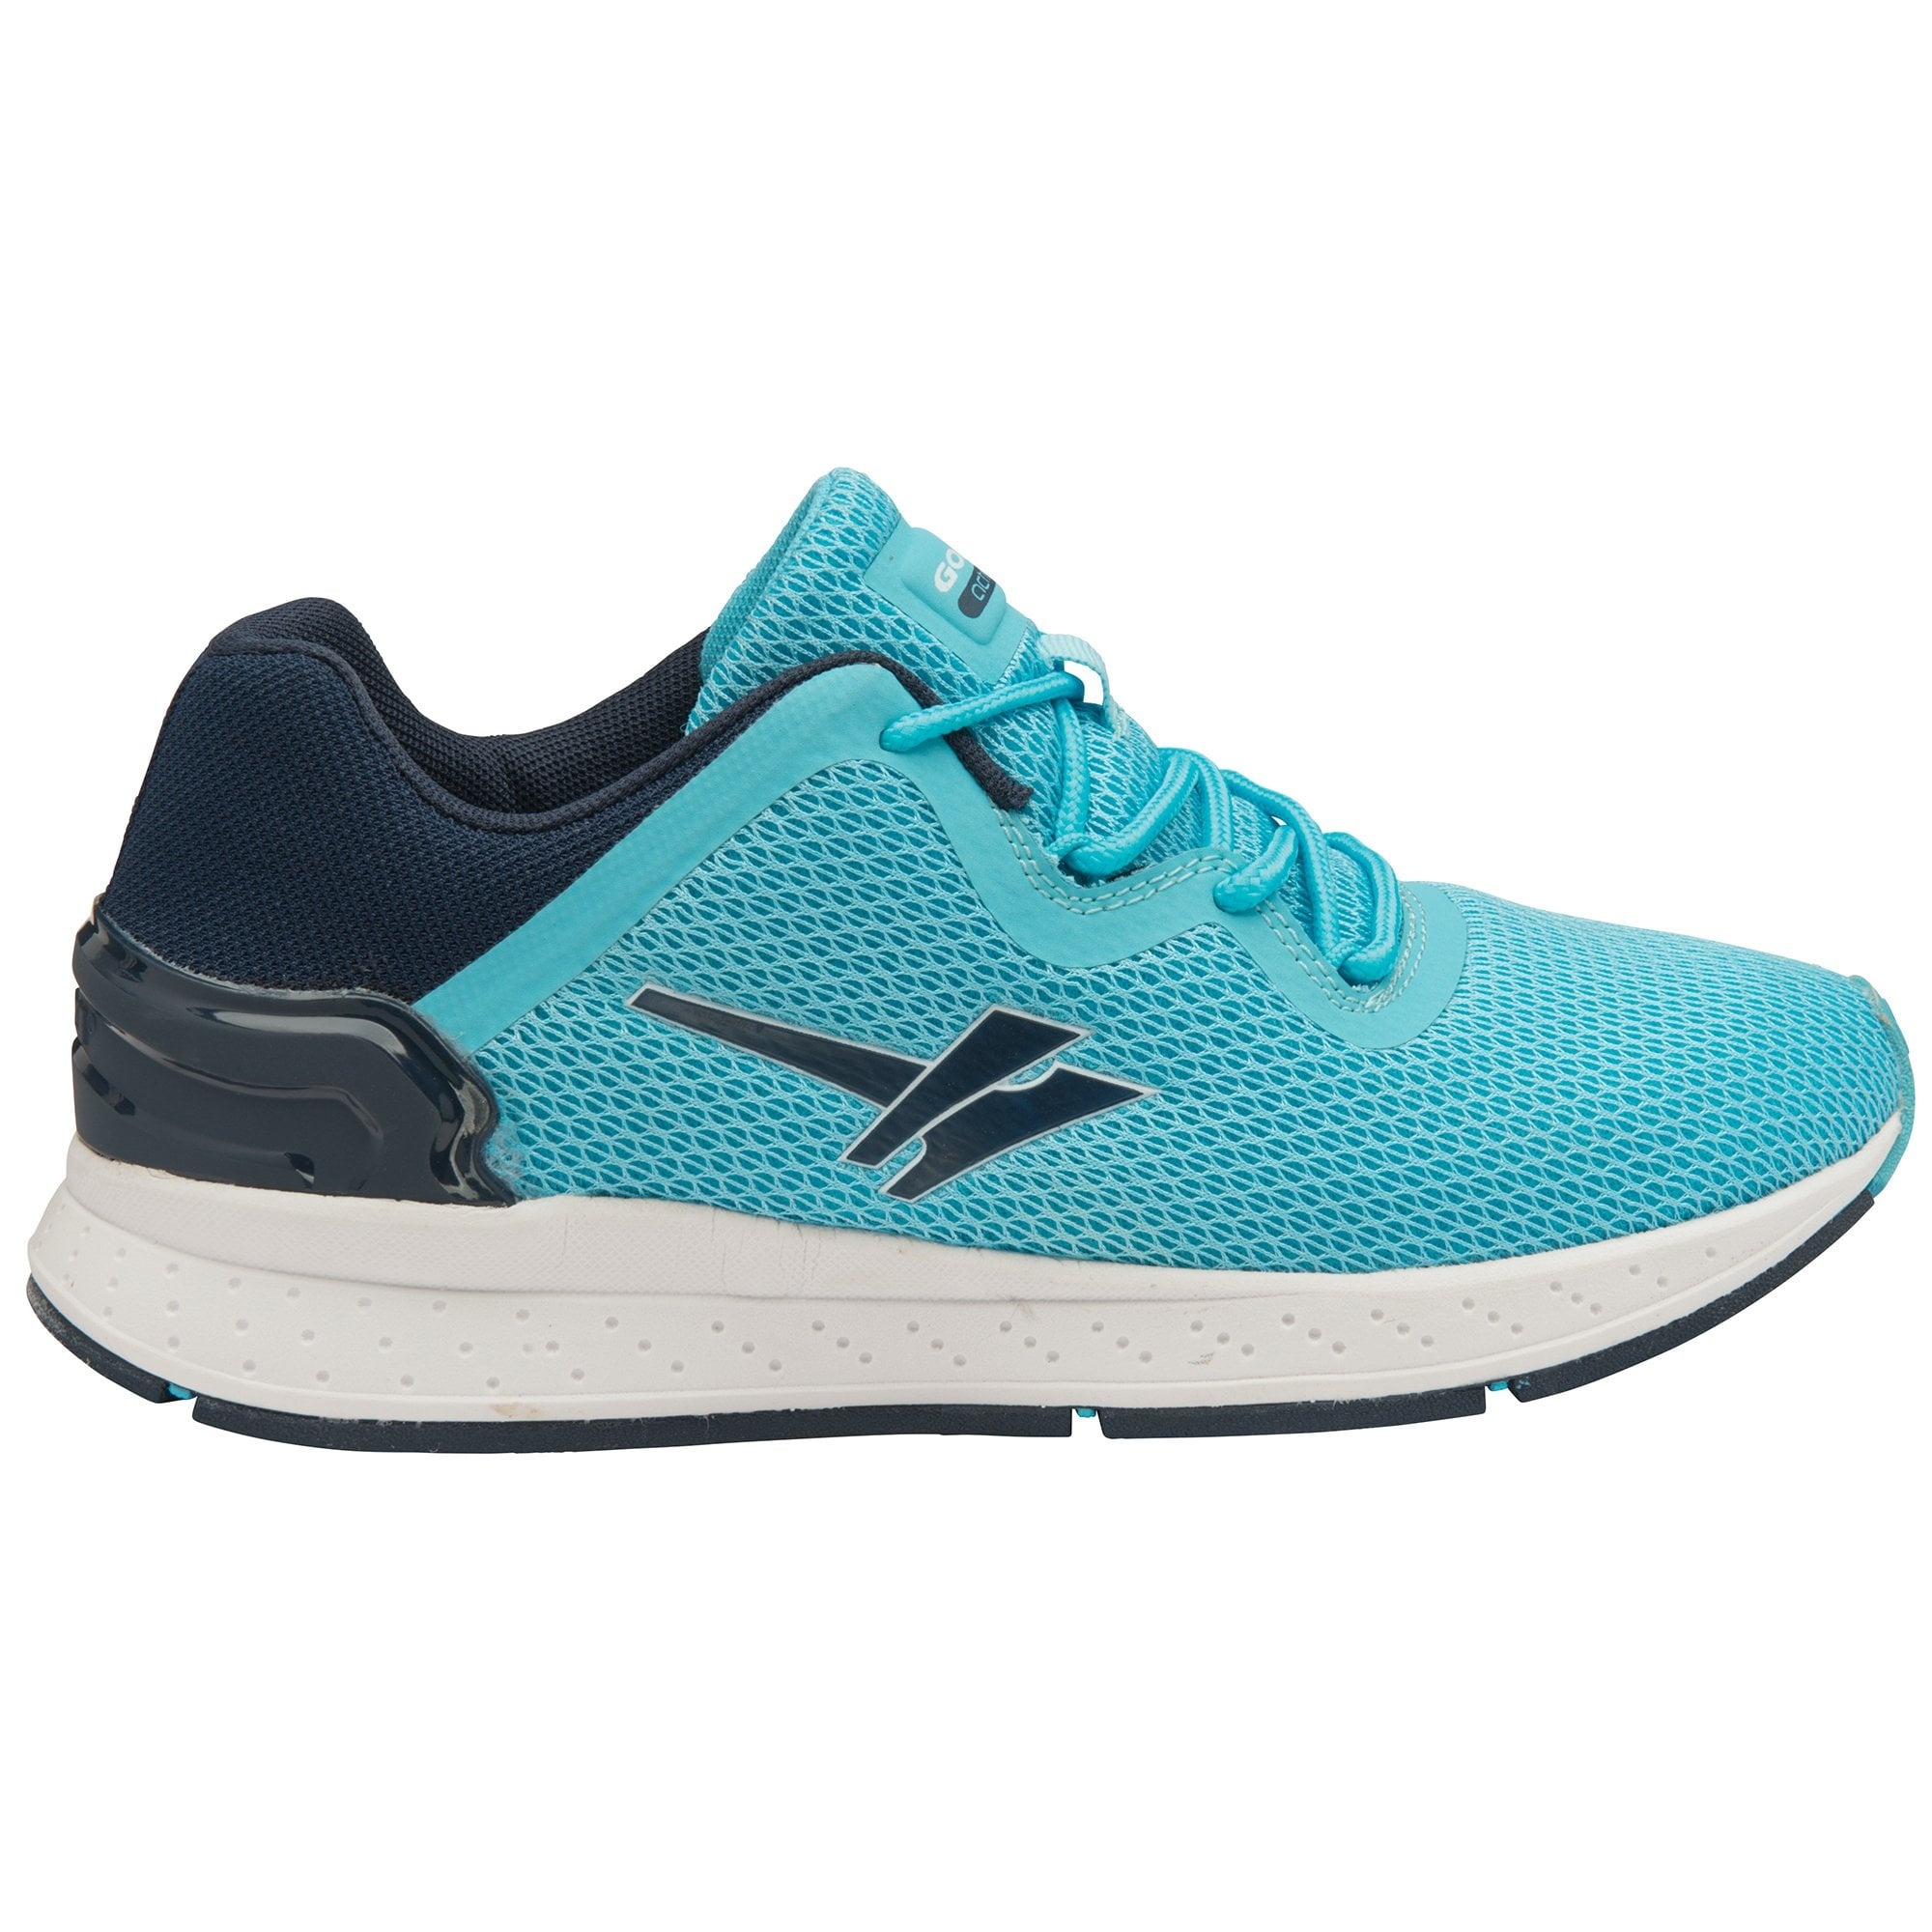 Major 2 blue/navy trainers online at gola